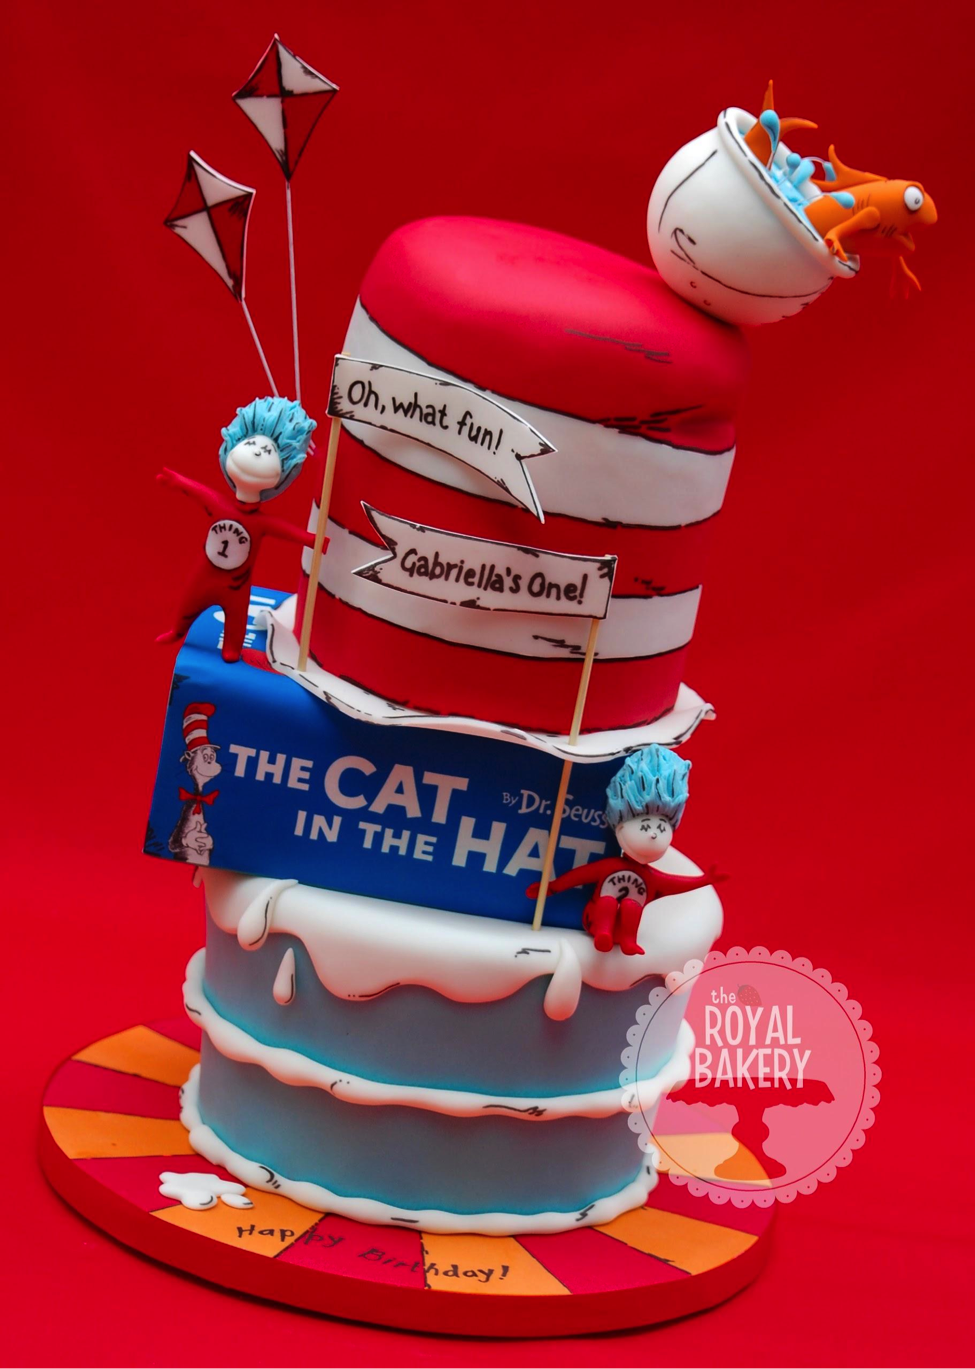 Dr. Suess Cake With a Starburst Cake Board Design